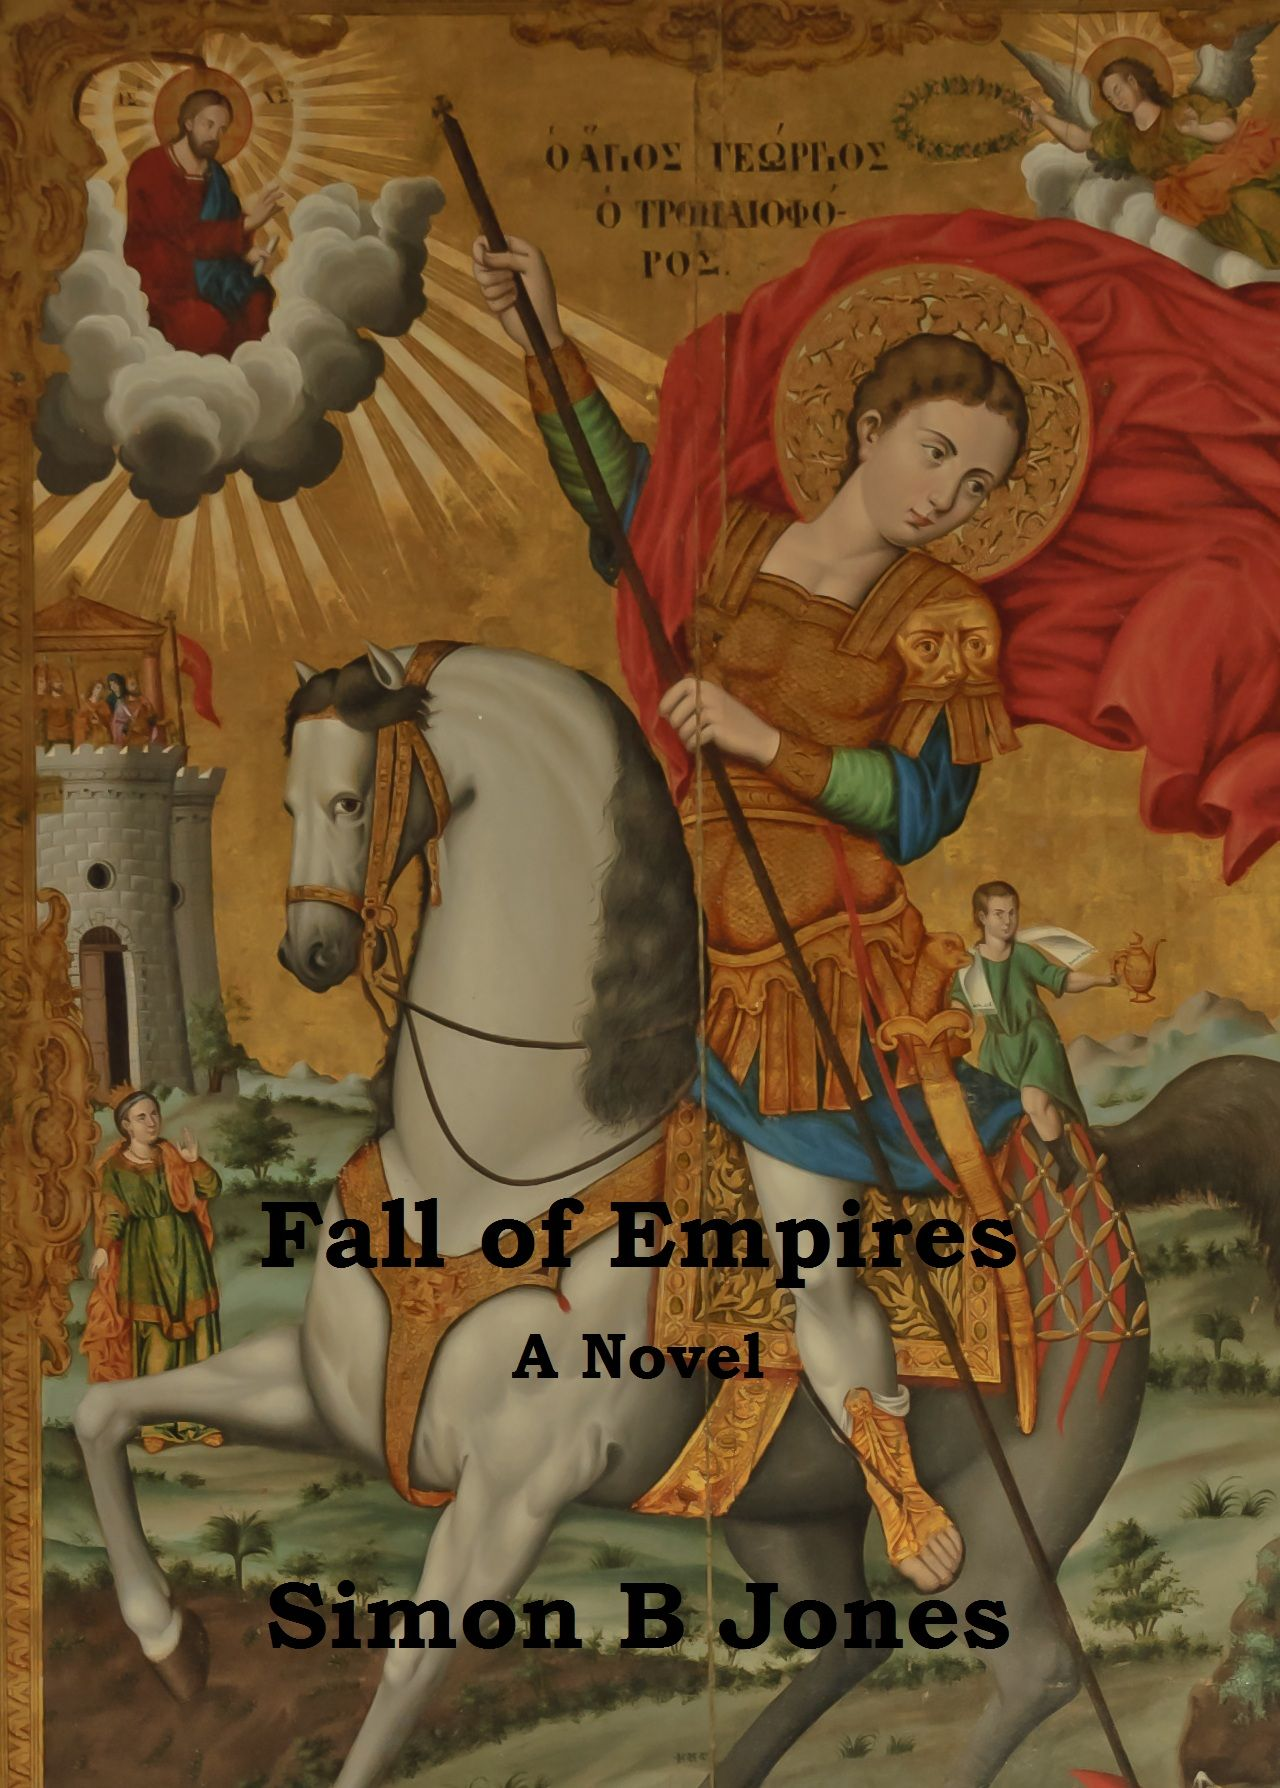 Cover for my new novel 'Fall of Empires' coming soon to Wattpad com